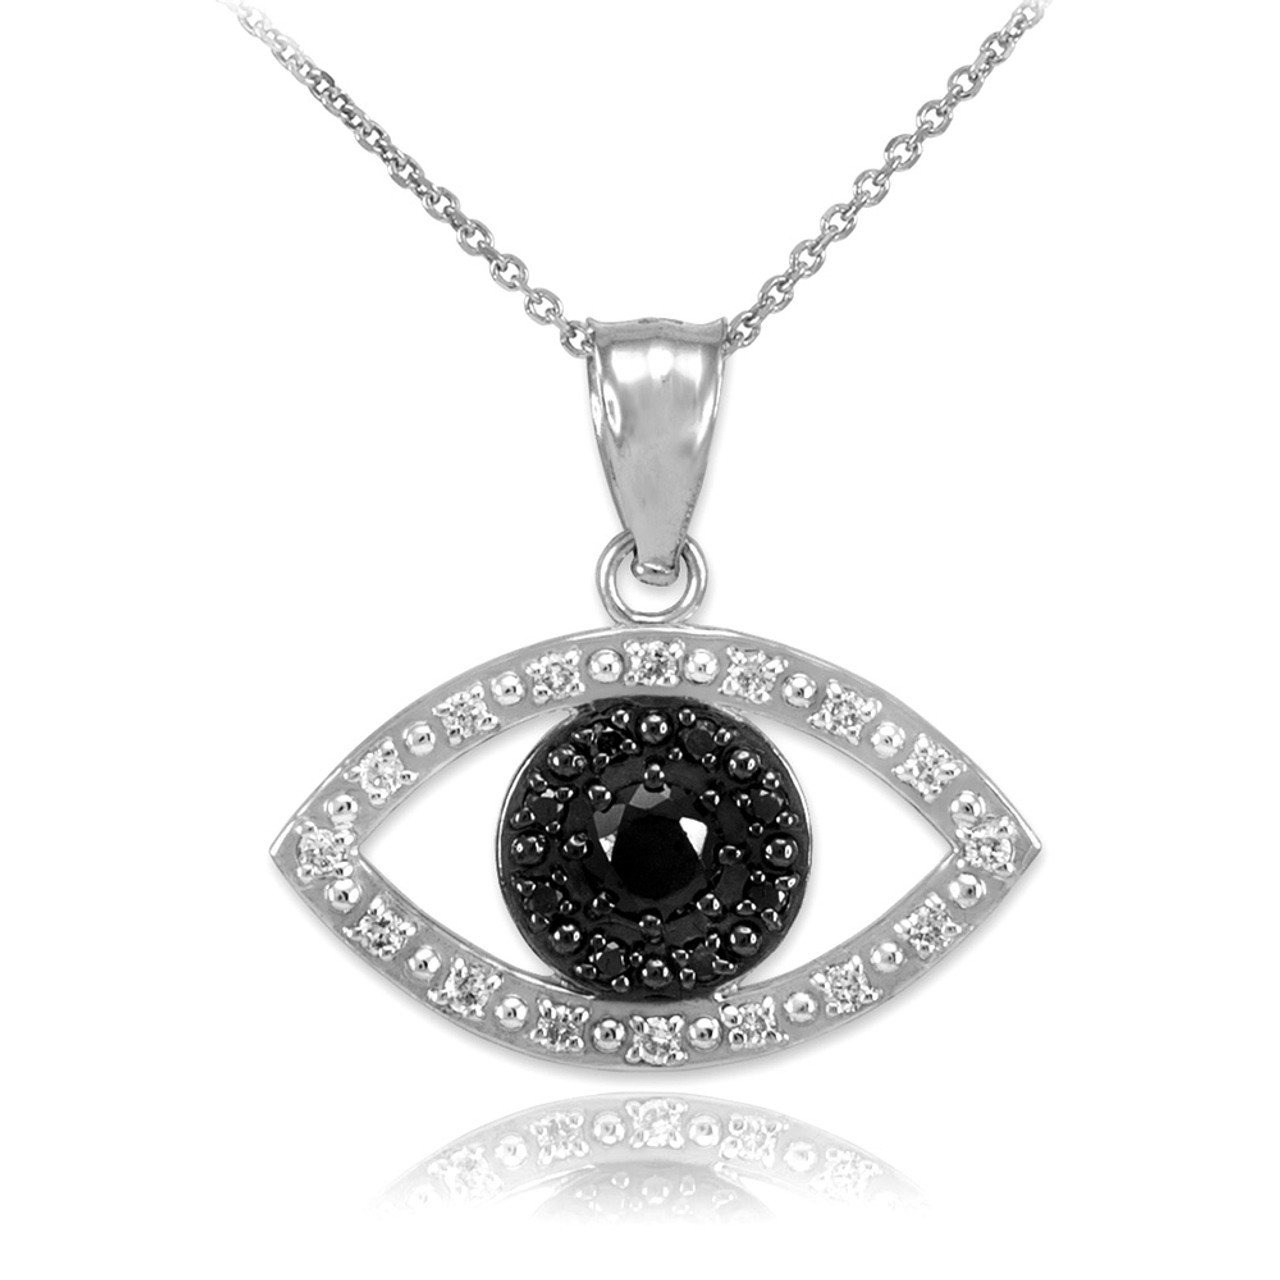 73816c02c8e3 White Gold Evil Eye Pendant with Clear and Black Diamonds